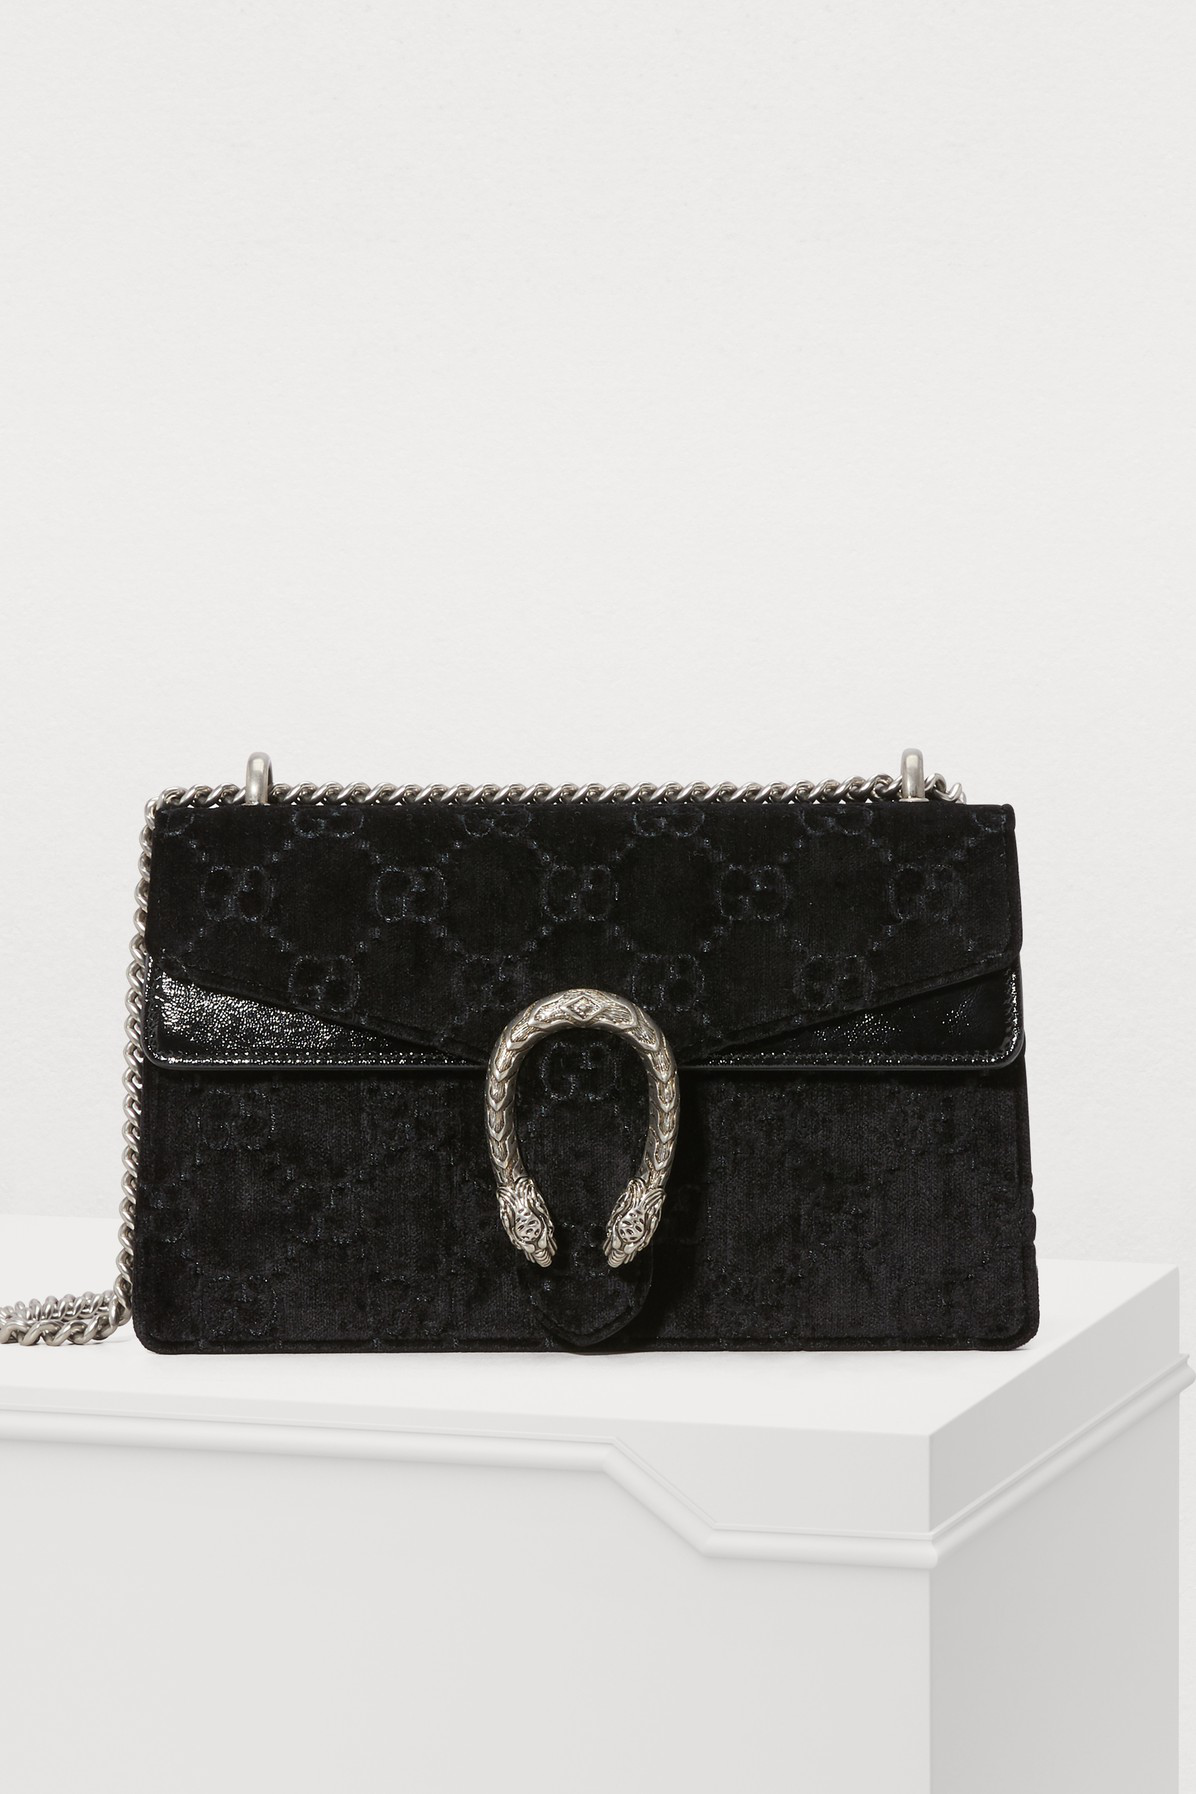 Gucci Small Dionysus Gg Velvet Shoulder Bag - Black  d90e726811e82